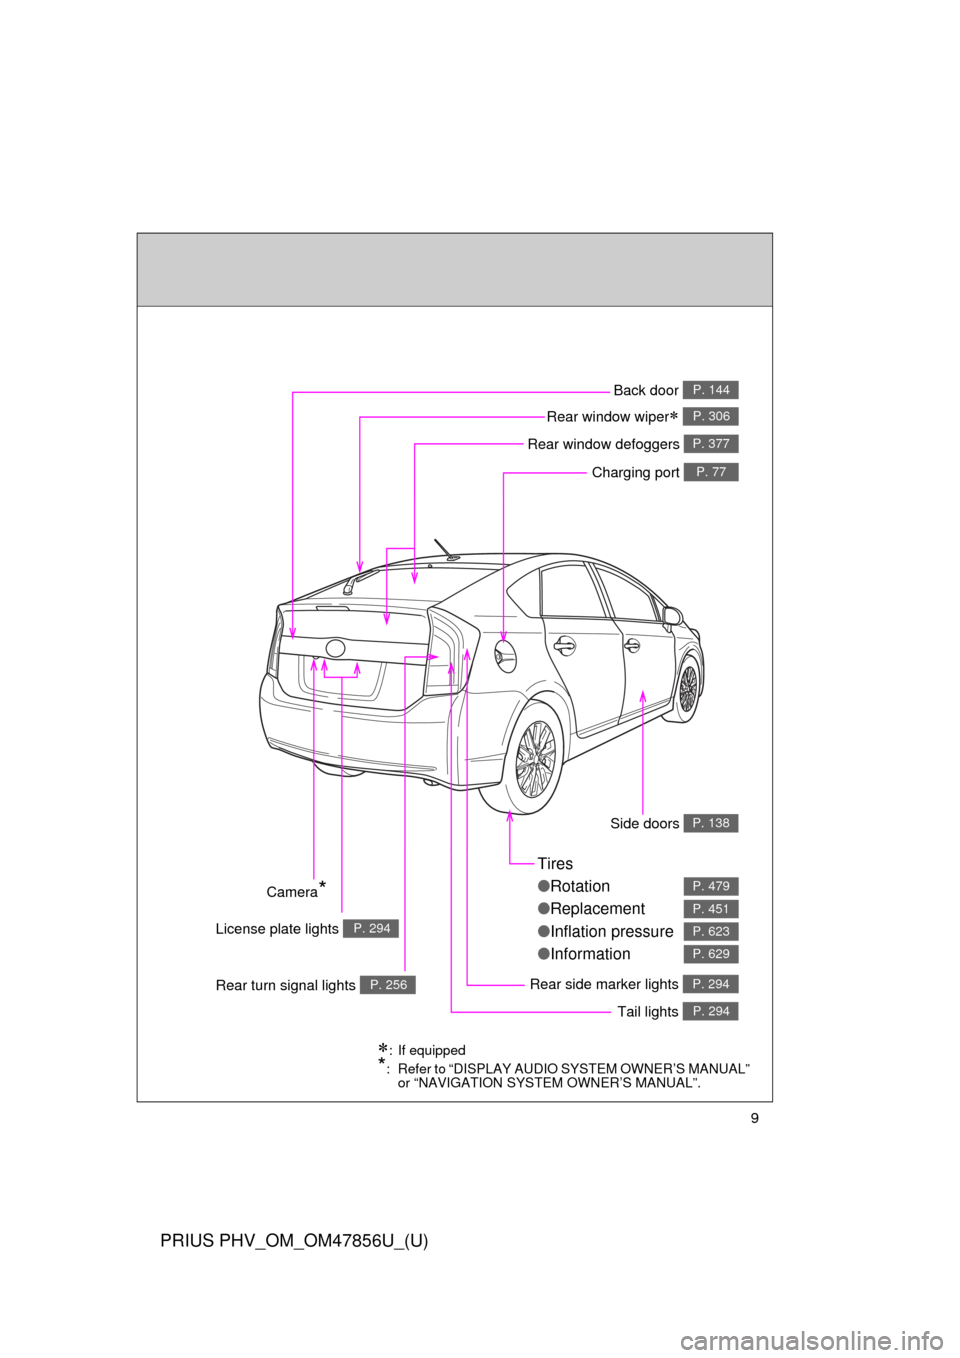 TOYOTA PRIUS PLUG-IN HYBRID 2014 1.G Owners Manual (688 Pages)